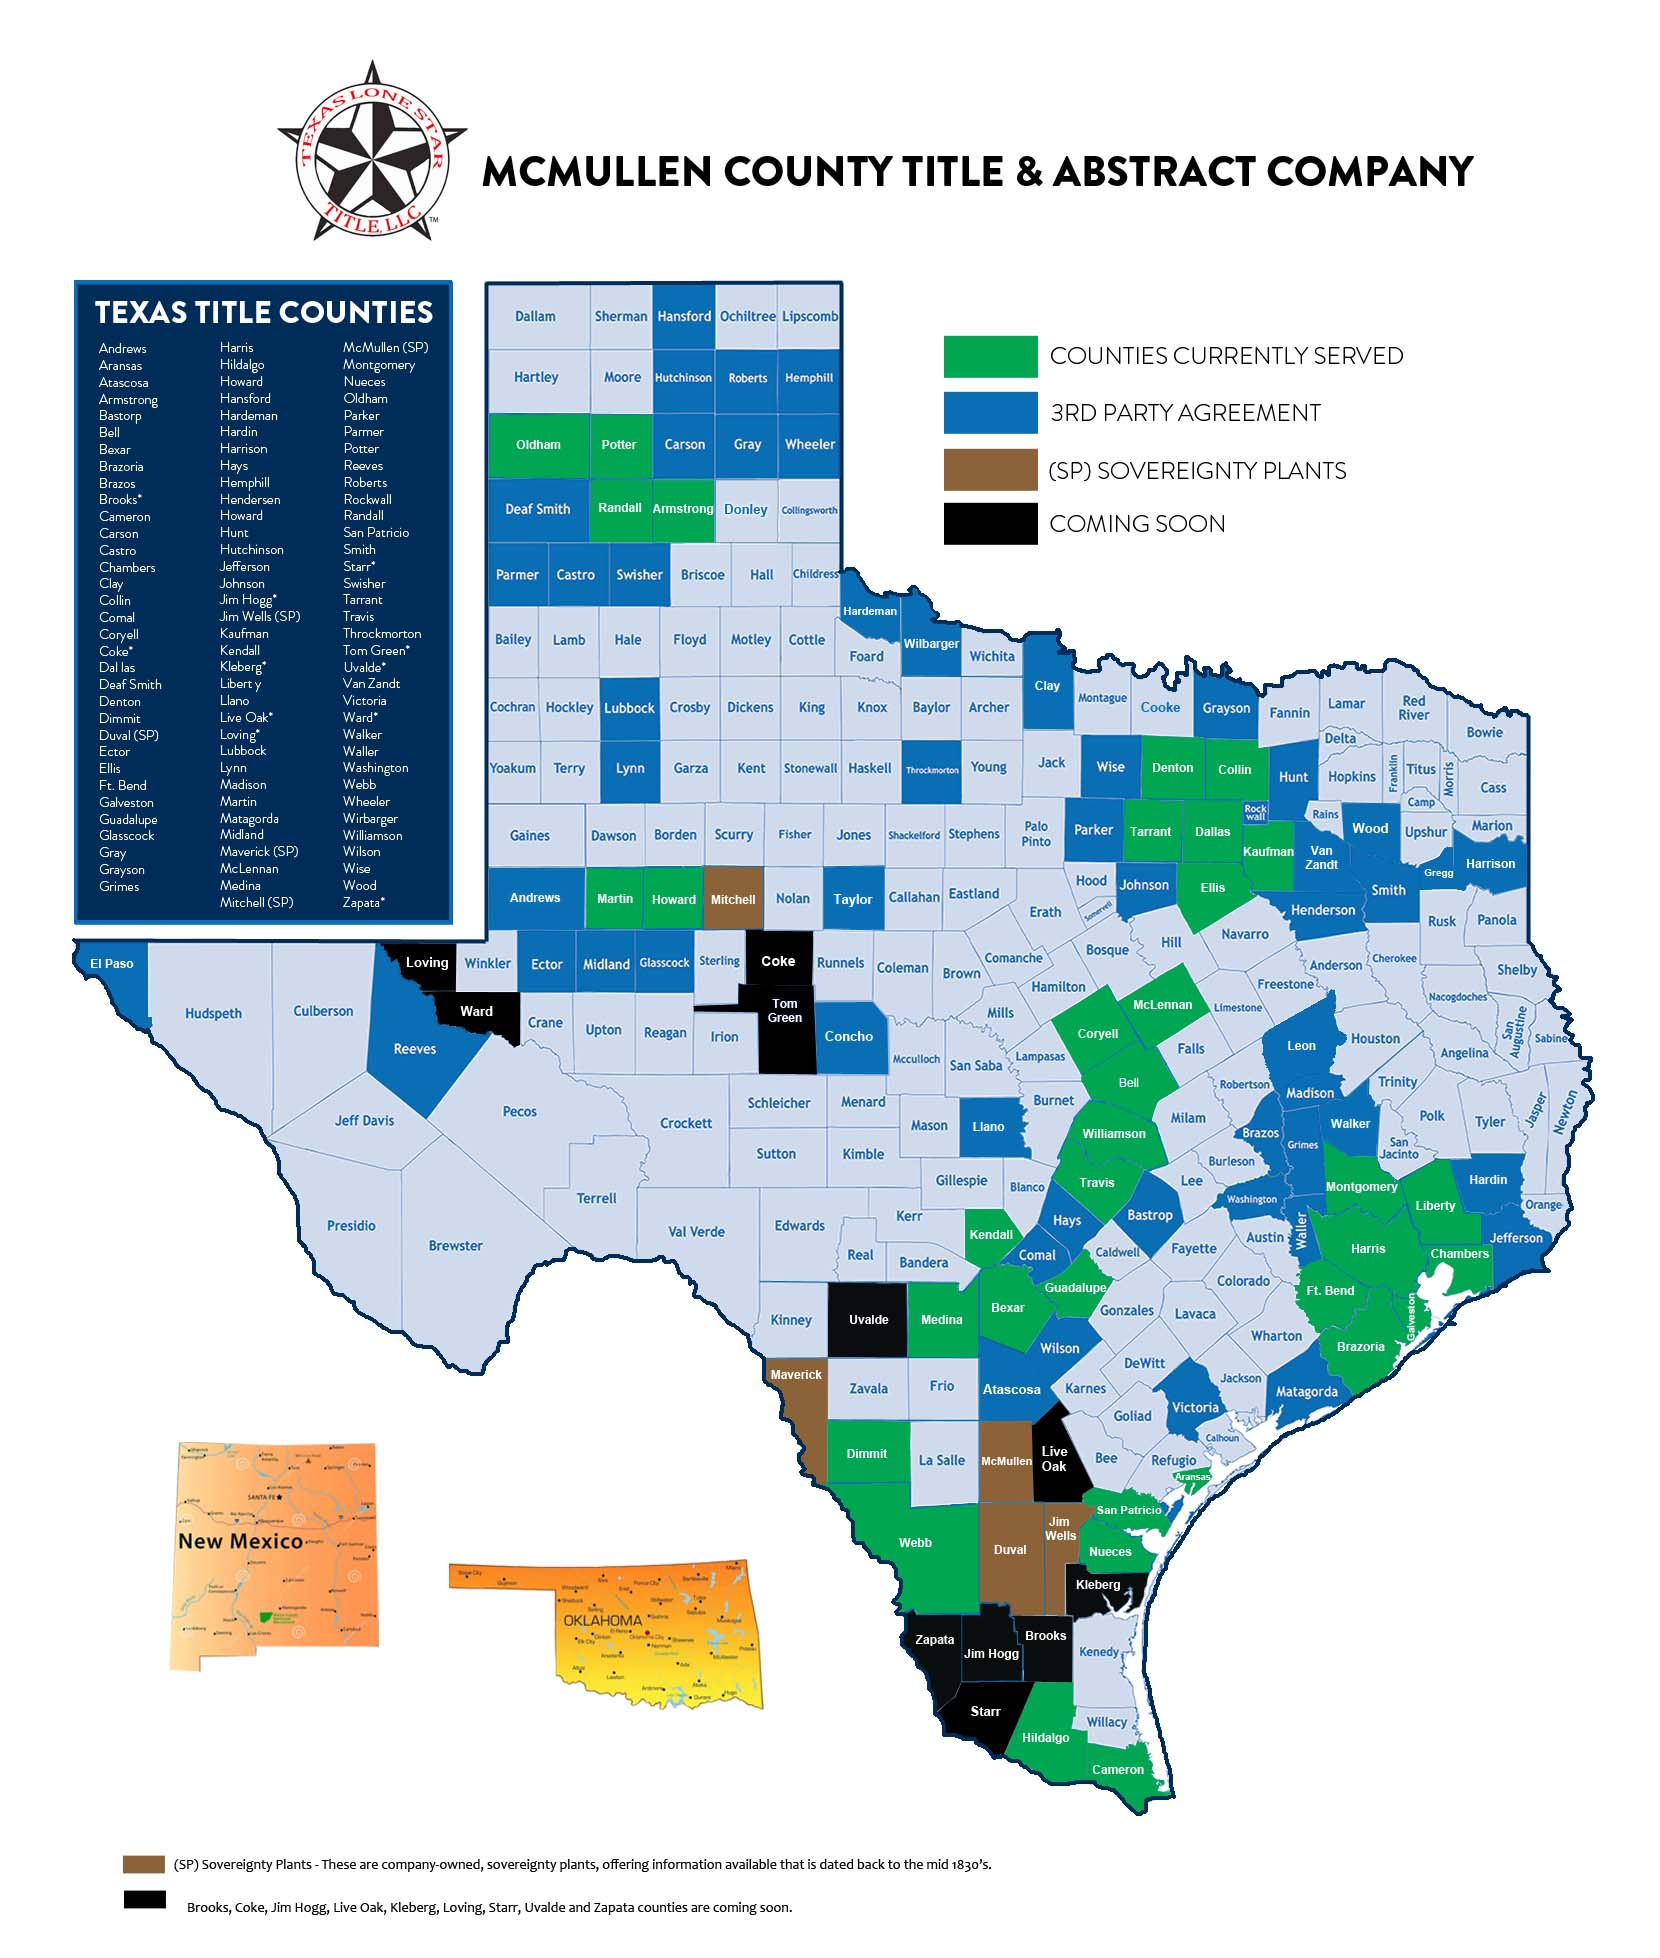 Counties in Texas served by McMullen County Title & Abstract Company